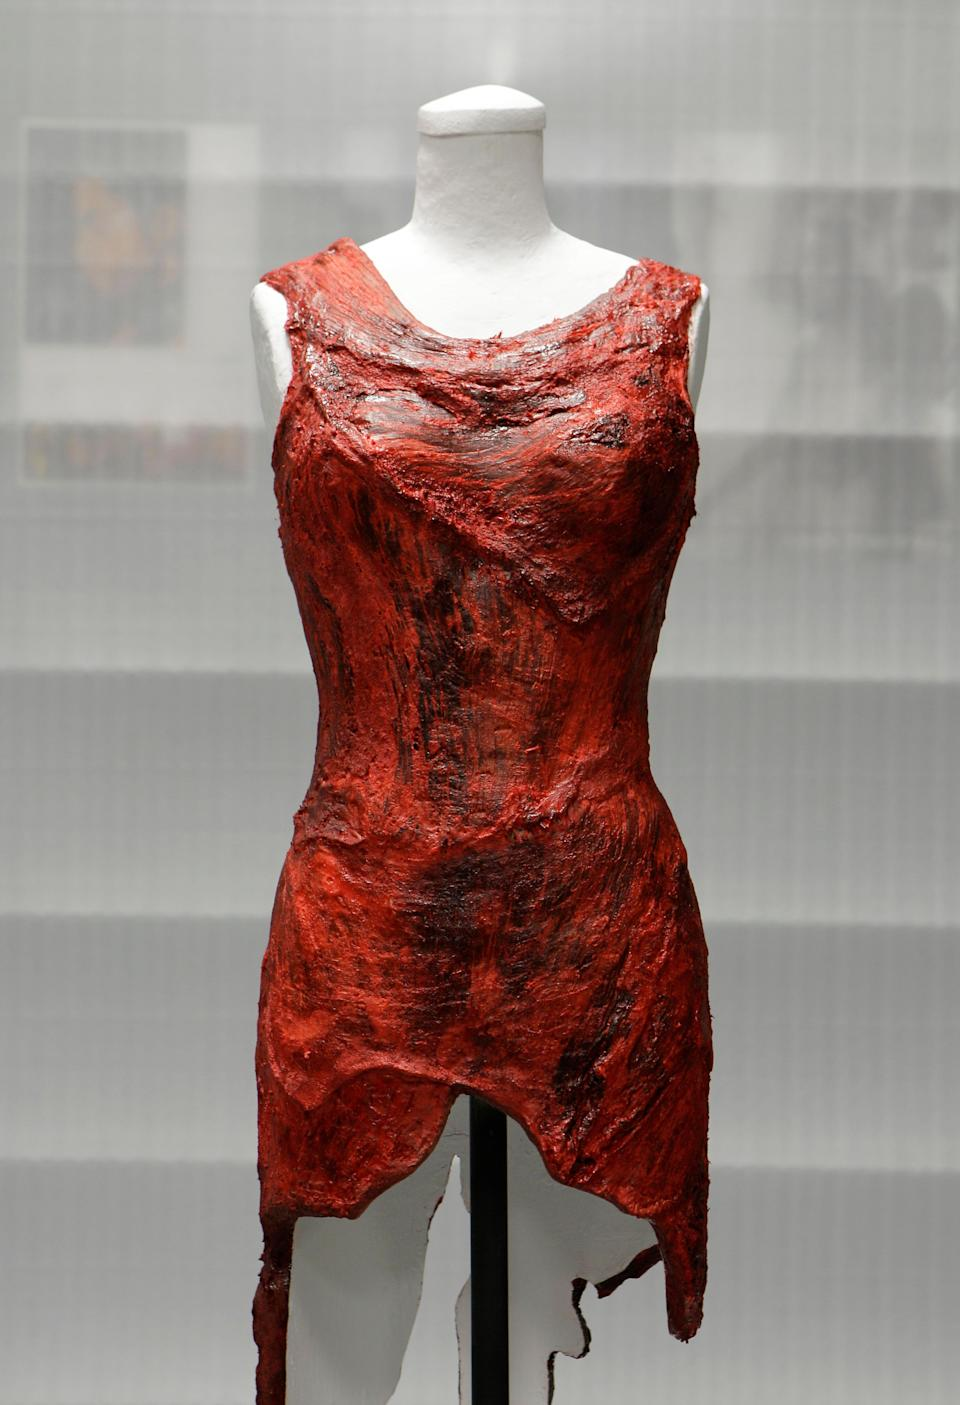 The meat dress as it looked in 2011 after being submitted to theRock And Roll Hall Of Fame (Photo: ASSOCIATED PRESS)